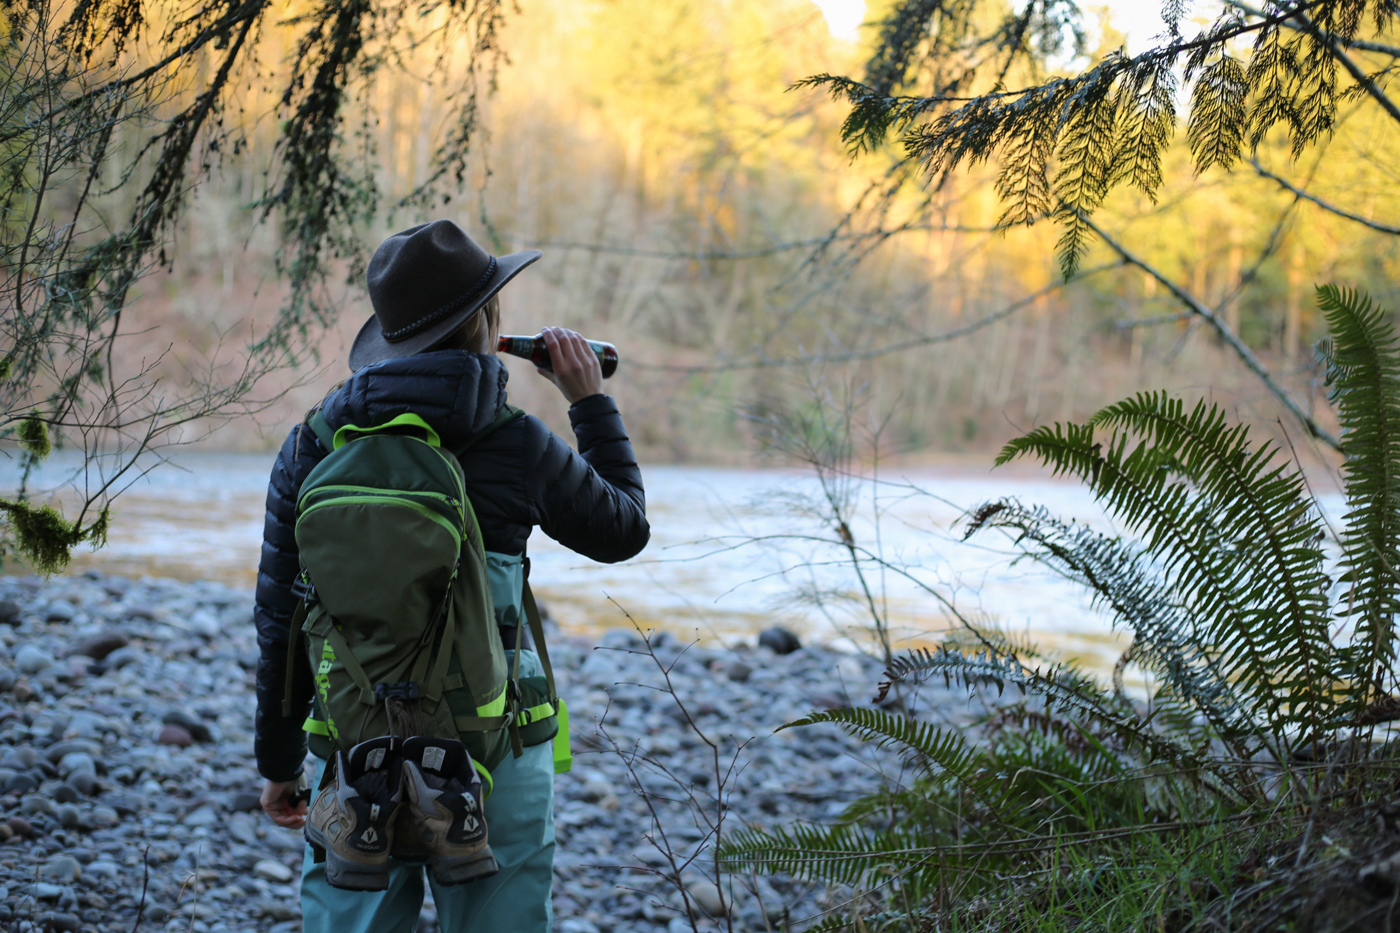 the-roving-dears-c2016-steelhead-sandy-IMG_8258.jpg